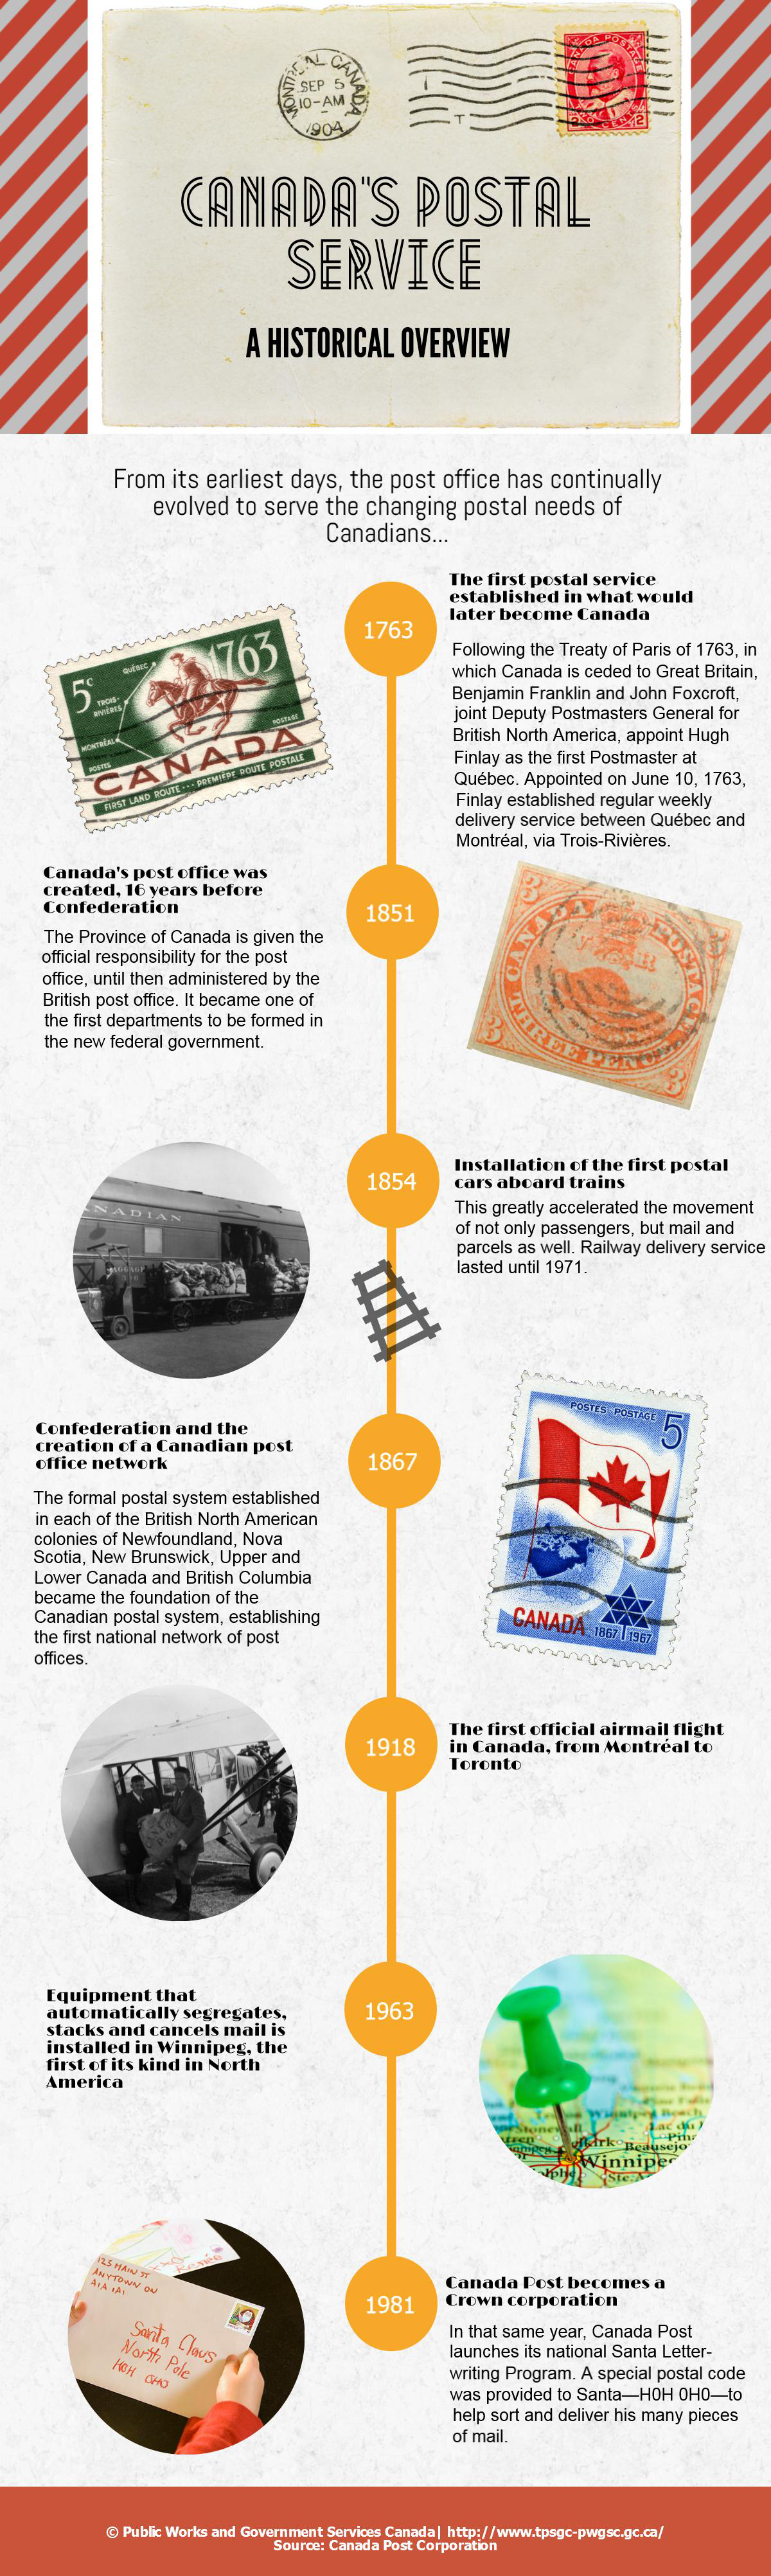 Infographic: Canada's postal service: a historical overview infographic